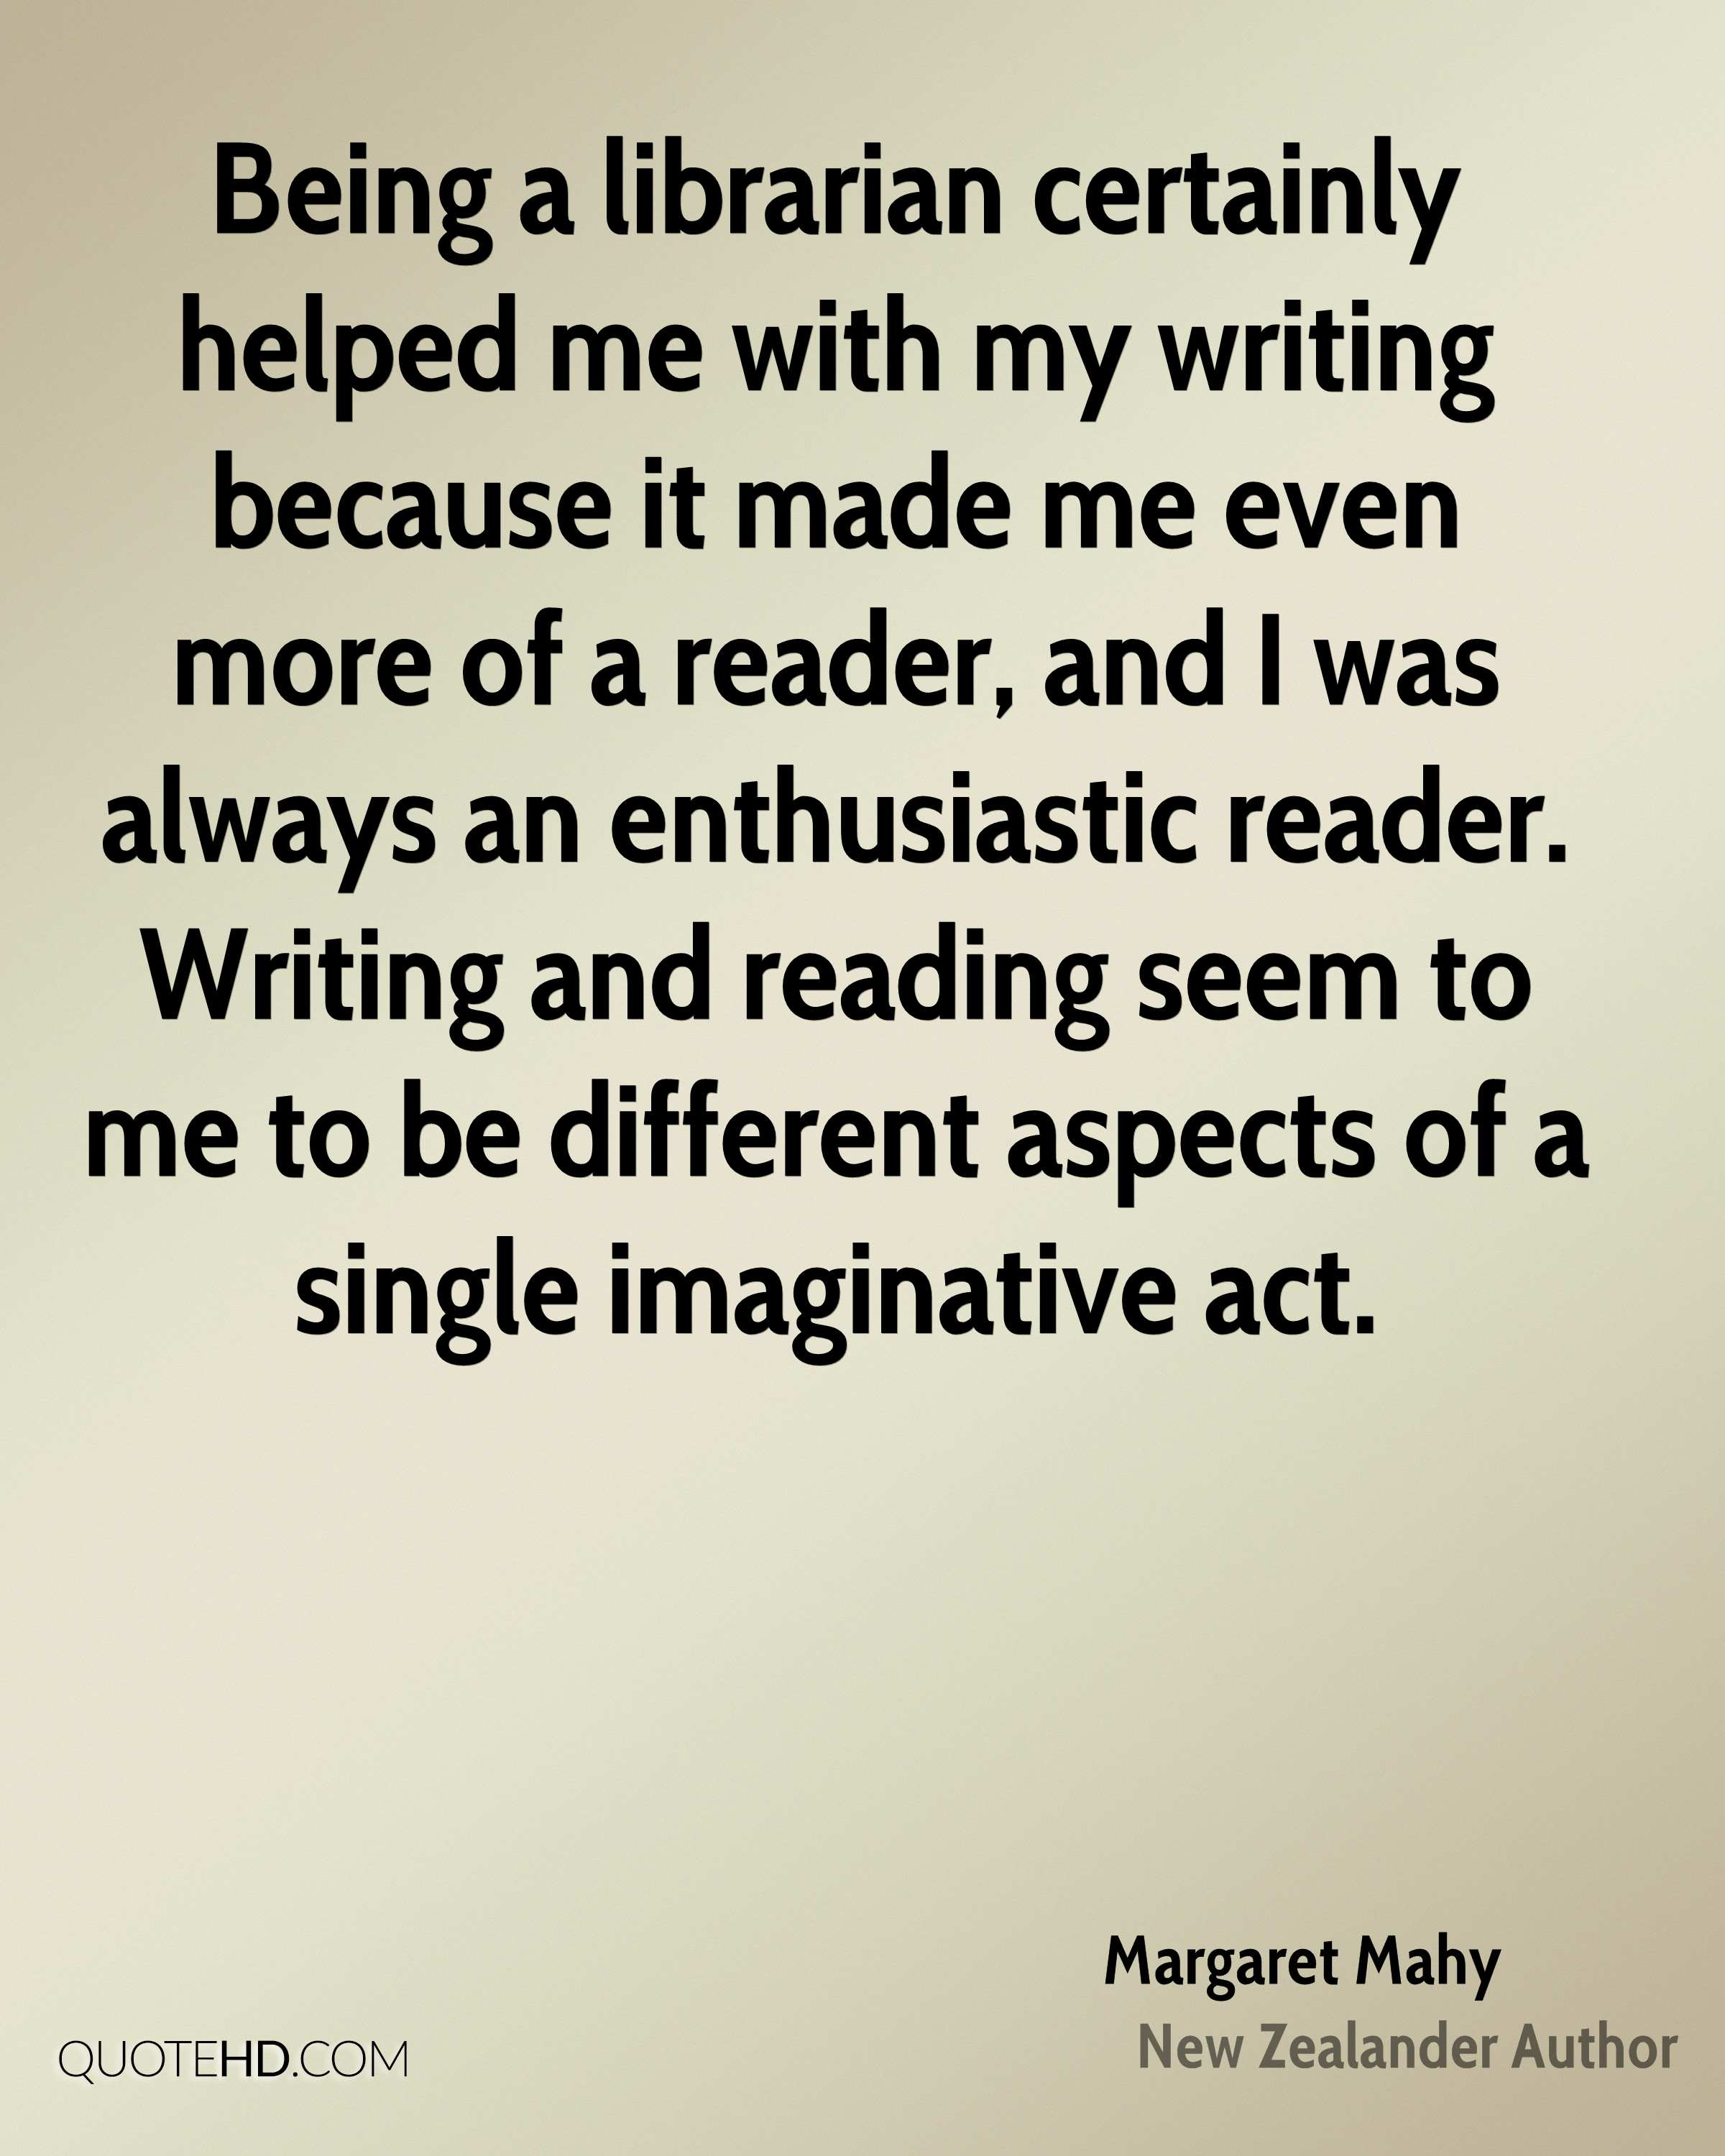 Being a librarian certainly helped me with my writing because it made me even more of a reader, and I was always an enthusiastic reader. Writing and reading seem to me to be different aspects of a single imaginative act.